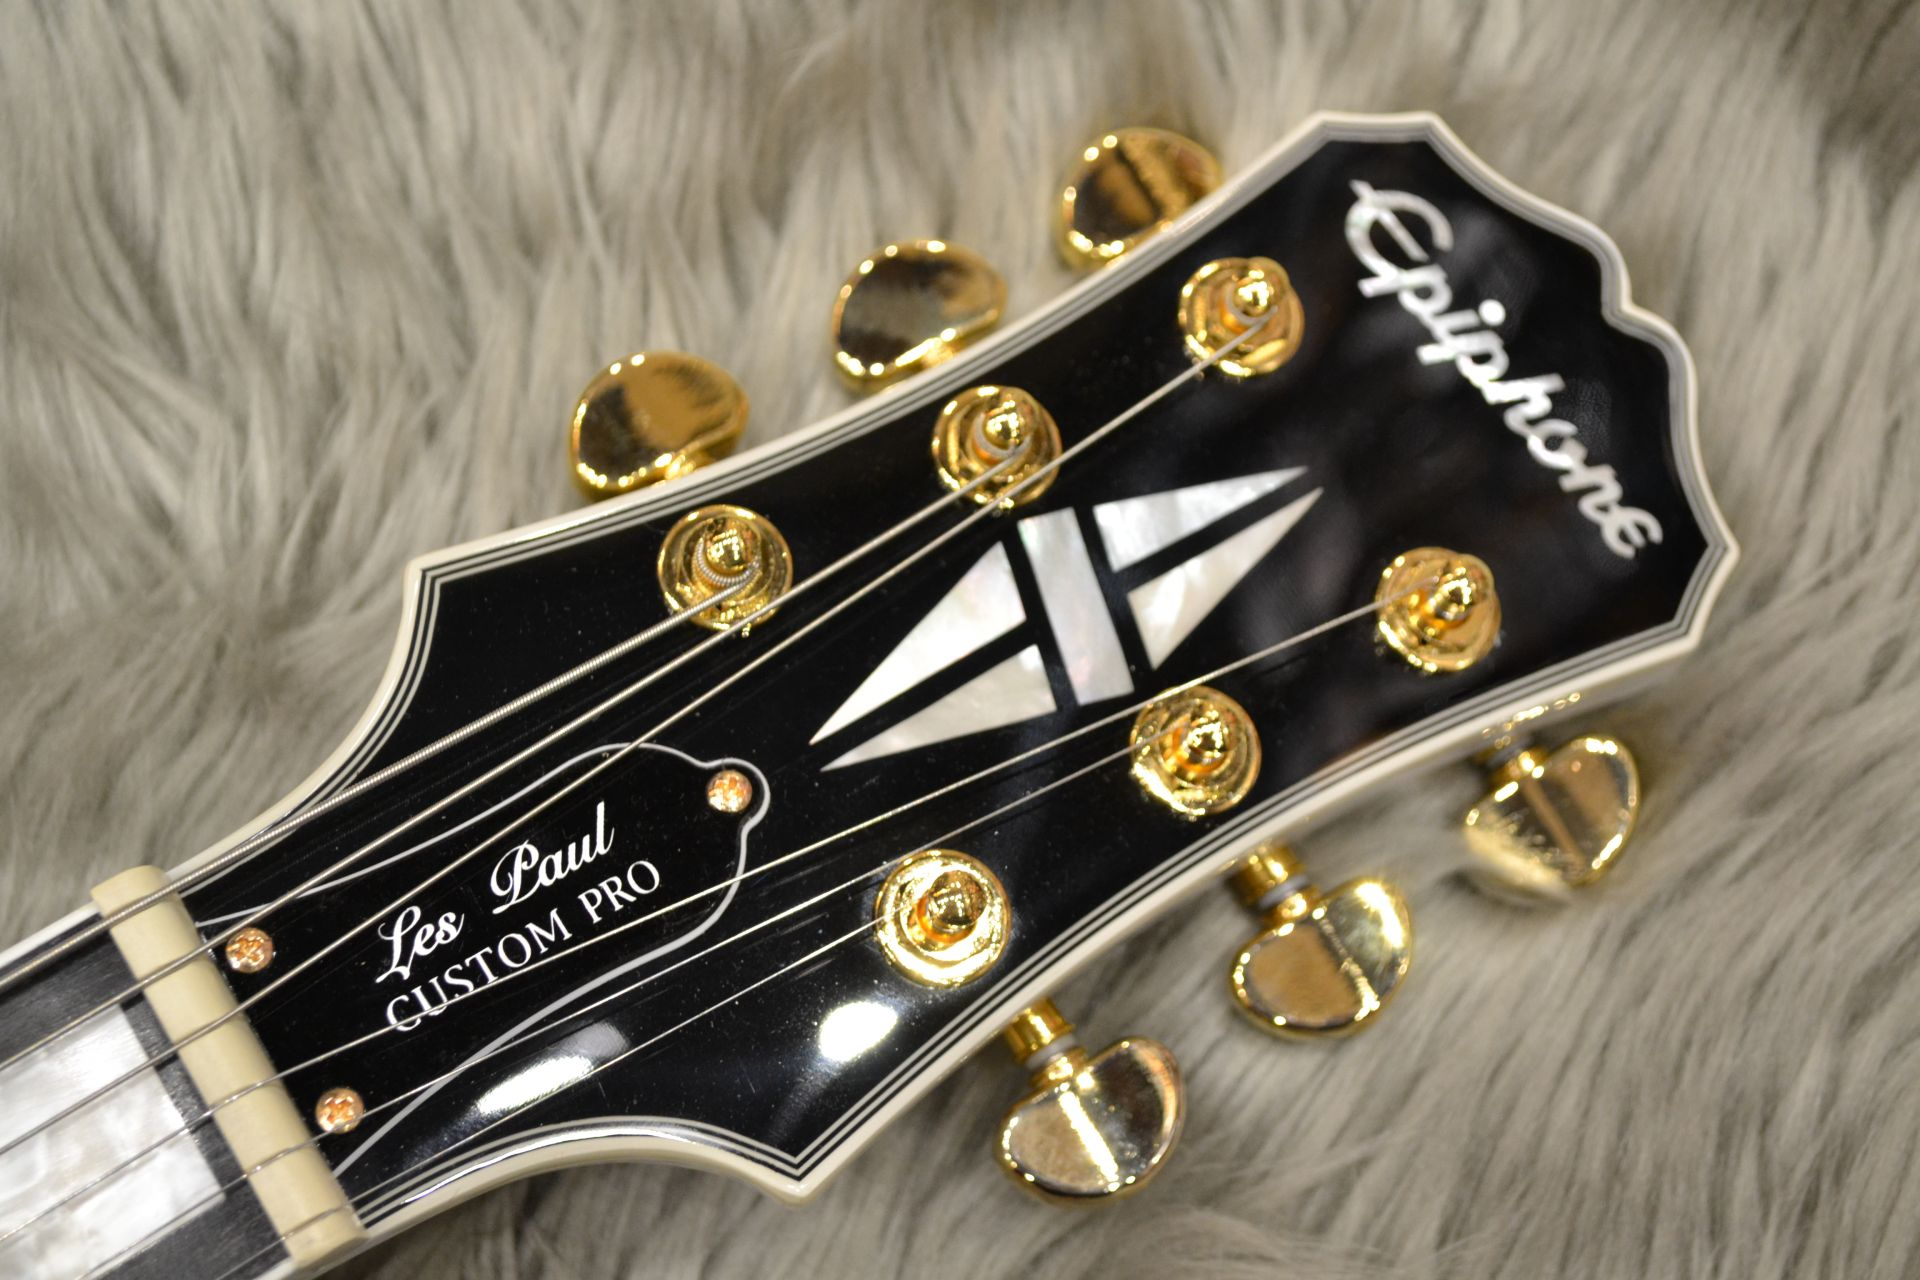 Les Paul CUSTOM PRO (ProBuckers&Coil-Tapping)のヘッド画像